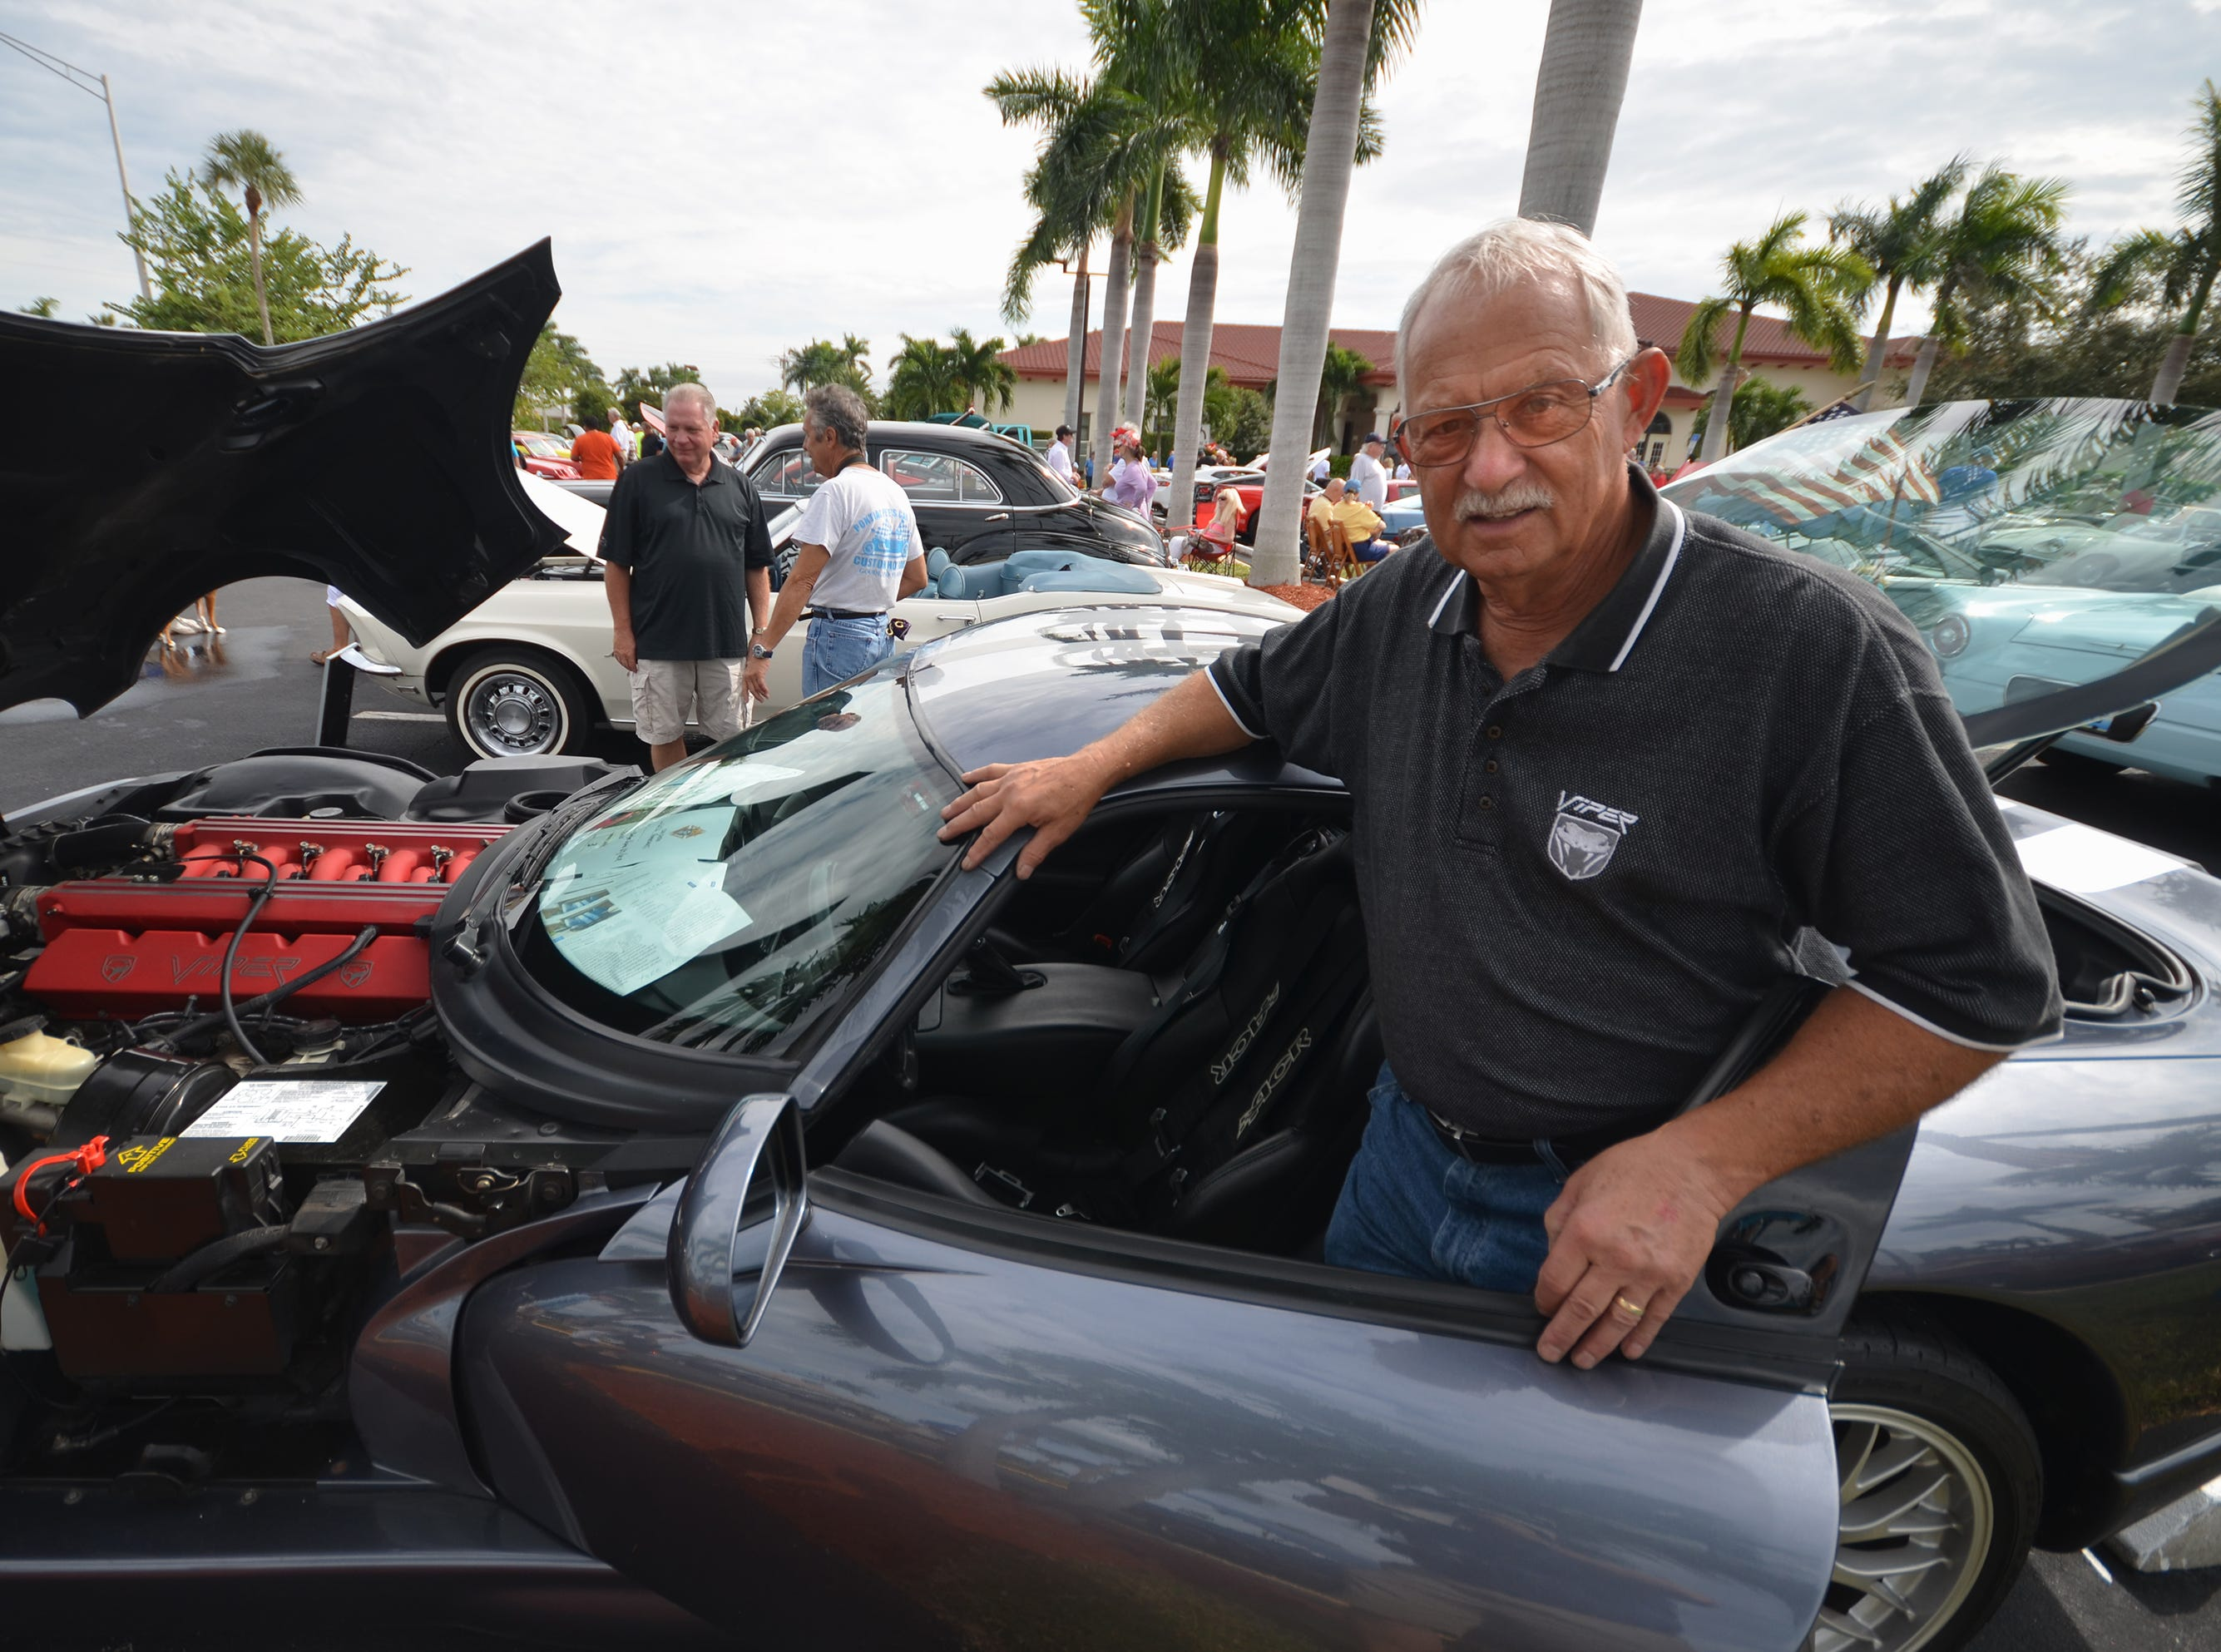 Will Giansanti displays his race track-certified 2000 Dodge Viper GTS/ACR, one of just 20 built. The Marco Island Knights of Columbus held their inaugural car show Saturday in the parking lot at San Marco Catholic Church.